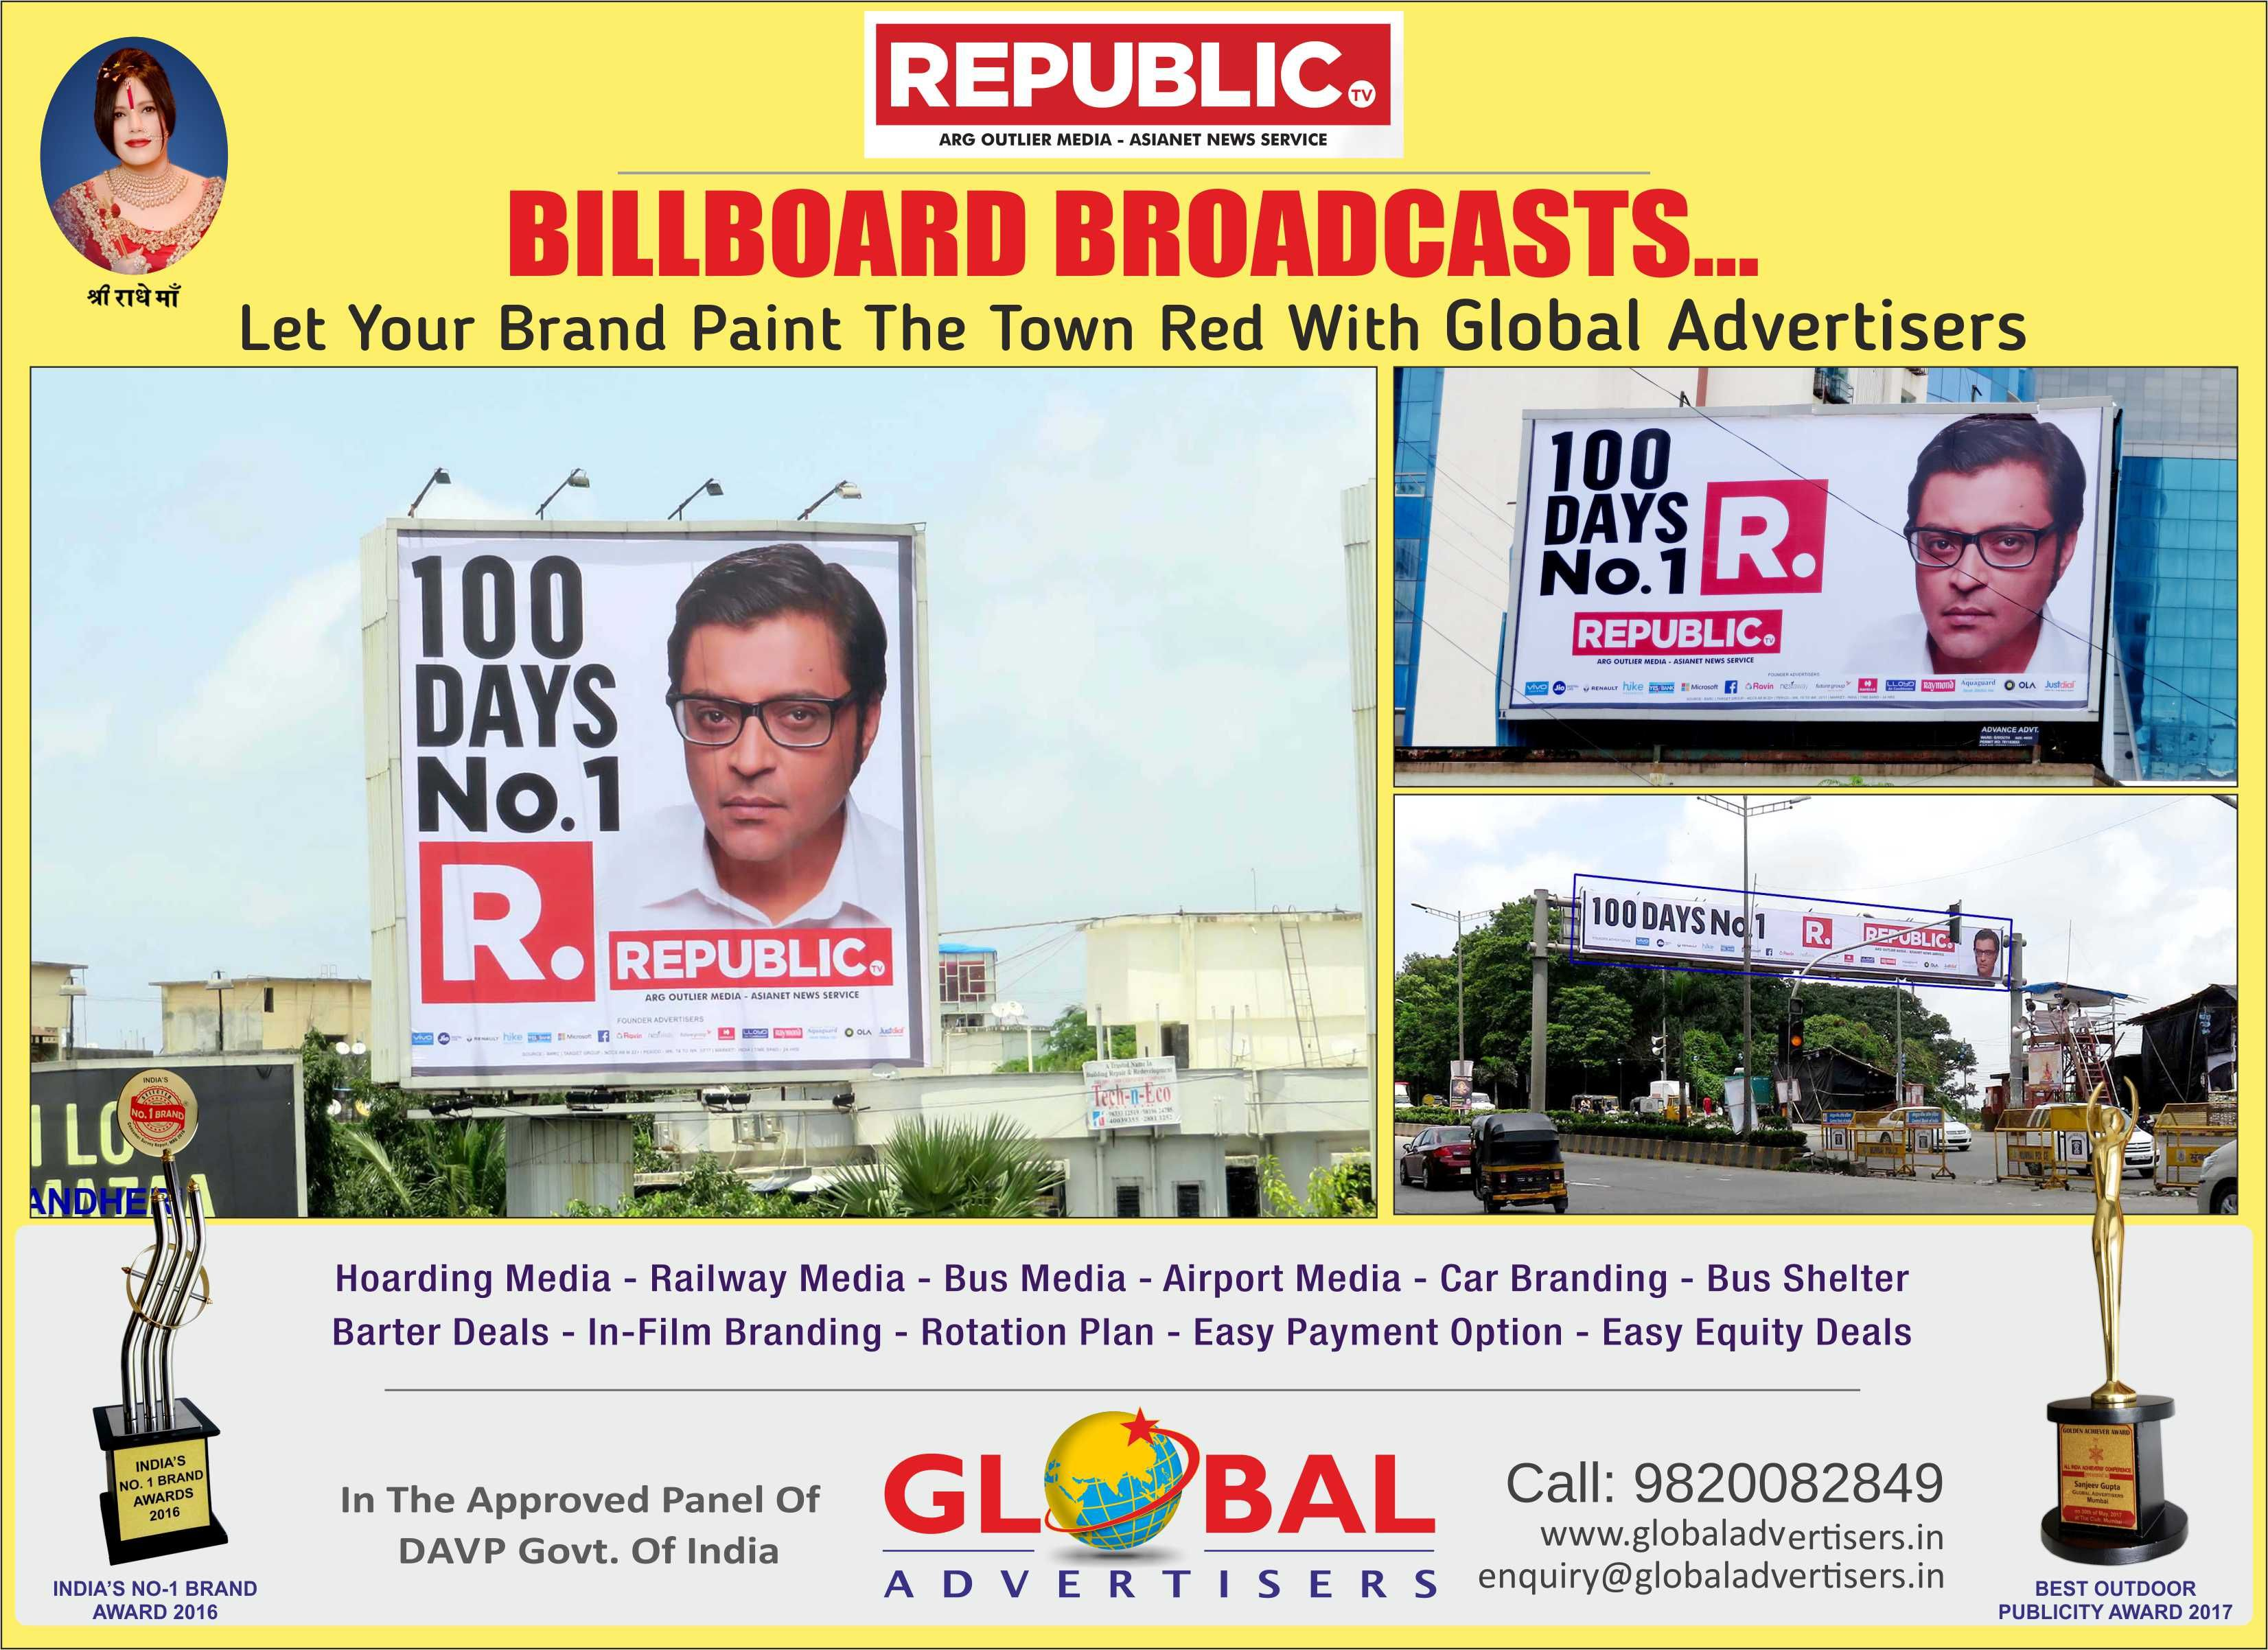 Global Advertisers Executes Huge Outdoor Campaign For Republic Tv Hoardings Billboards News Outdoor Advertising Advertising Global